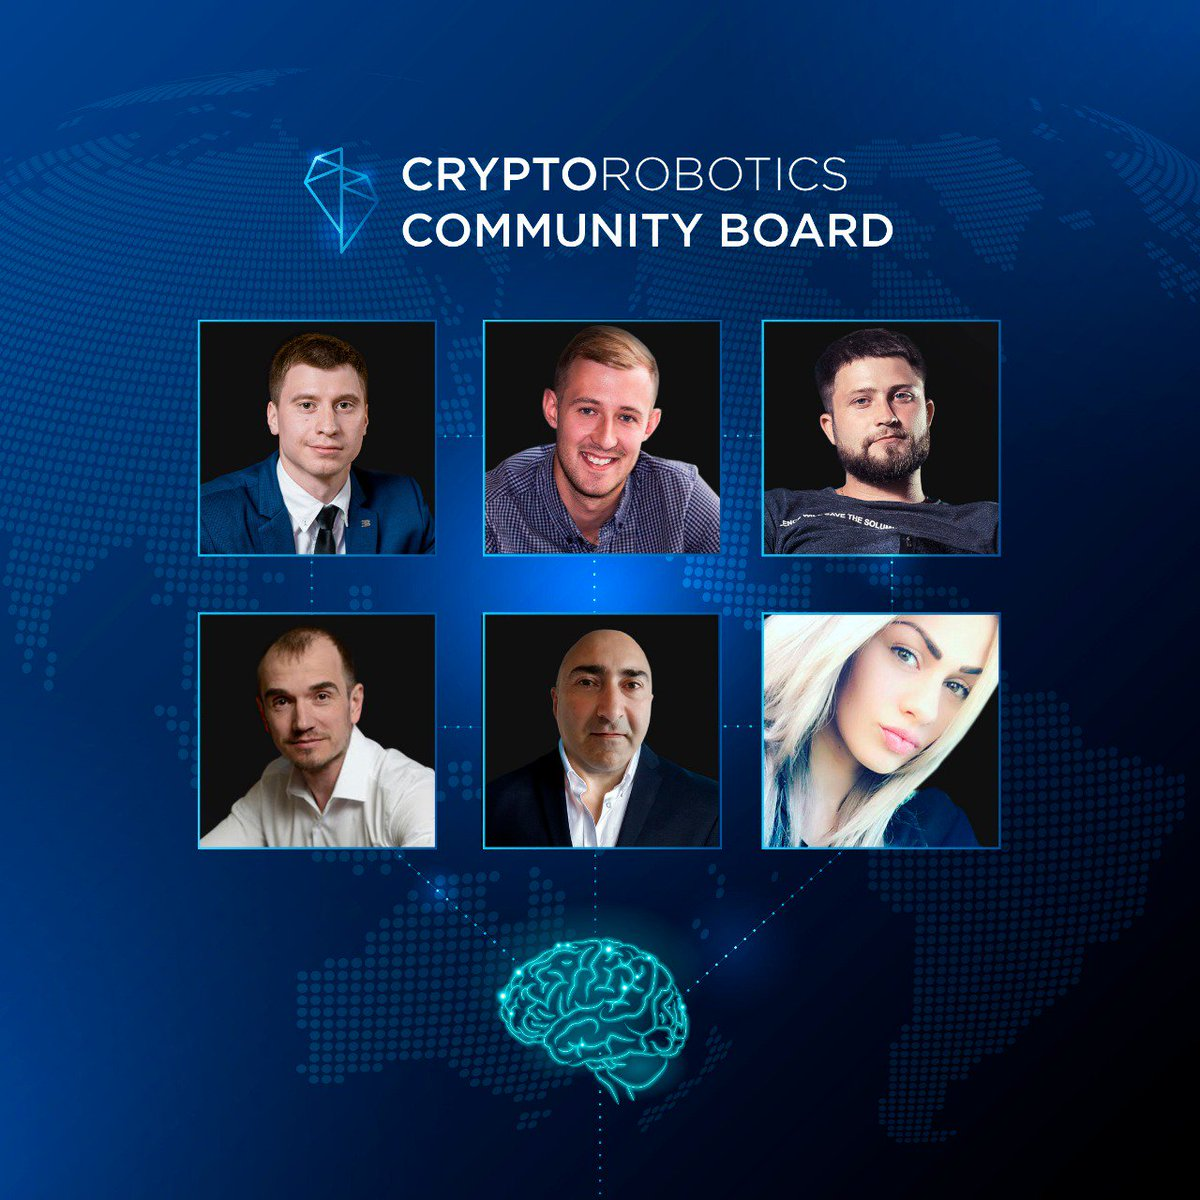 """Before launching the ICO the CryptoRobotics project has held the big reality game """"Holders vs. Traders"""" with more than 7000 participants.   https:// golos.io/cryptorobotics /@cryptorobotics/cryptorobotics-community-board &nbsp; … <br>http://pic.twitter.com/QePsoOit6w"""